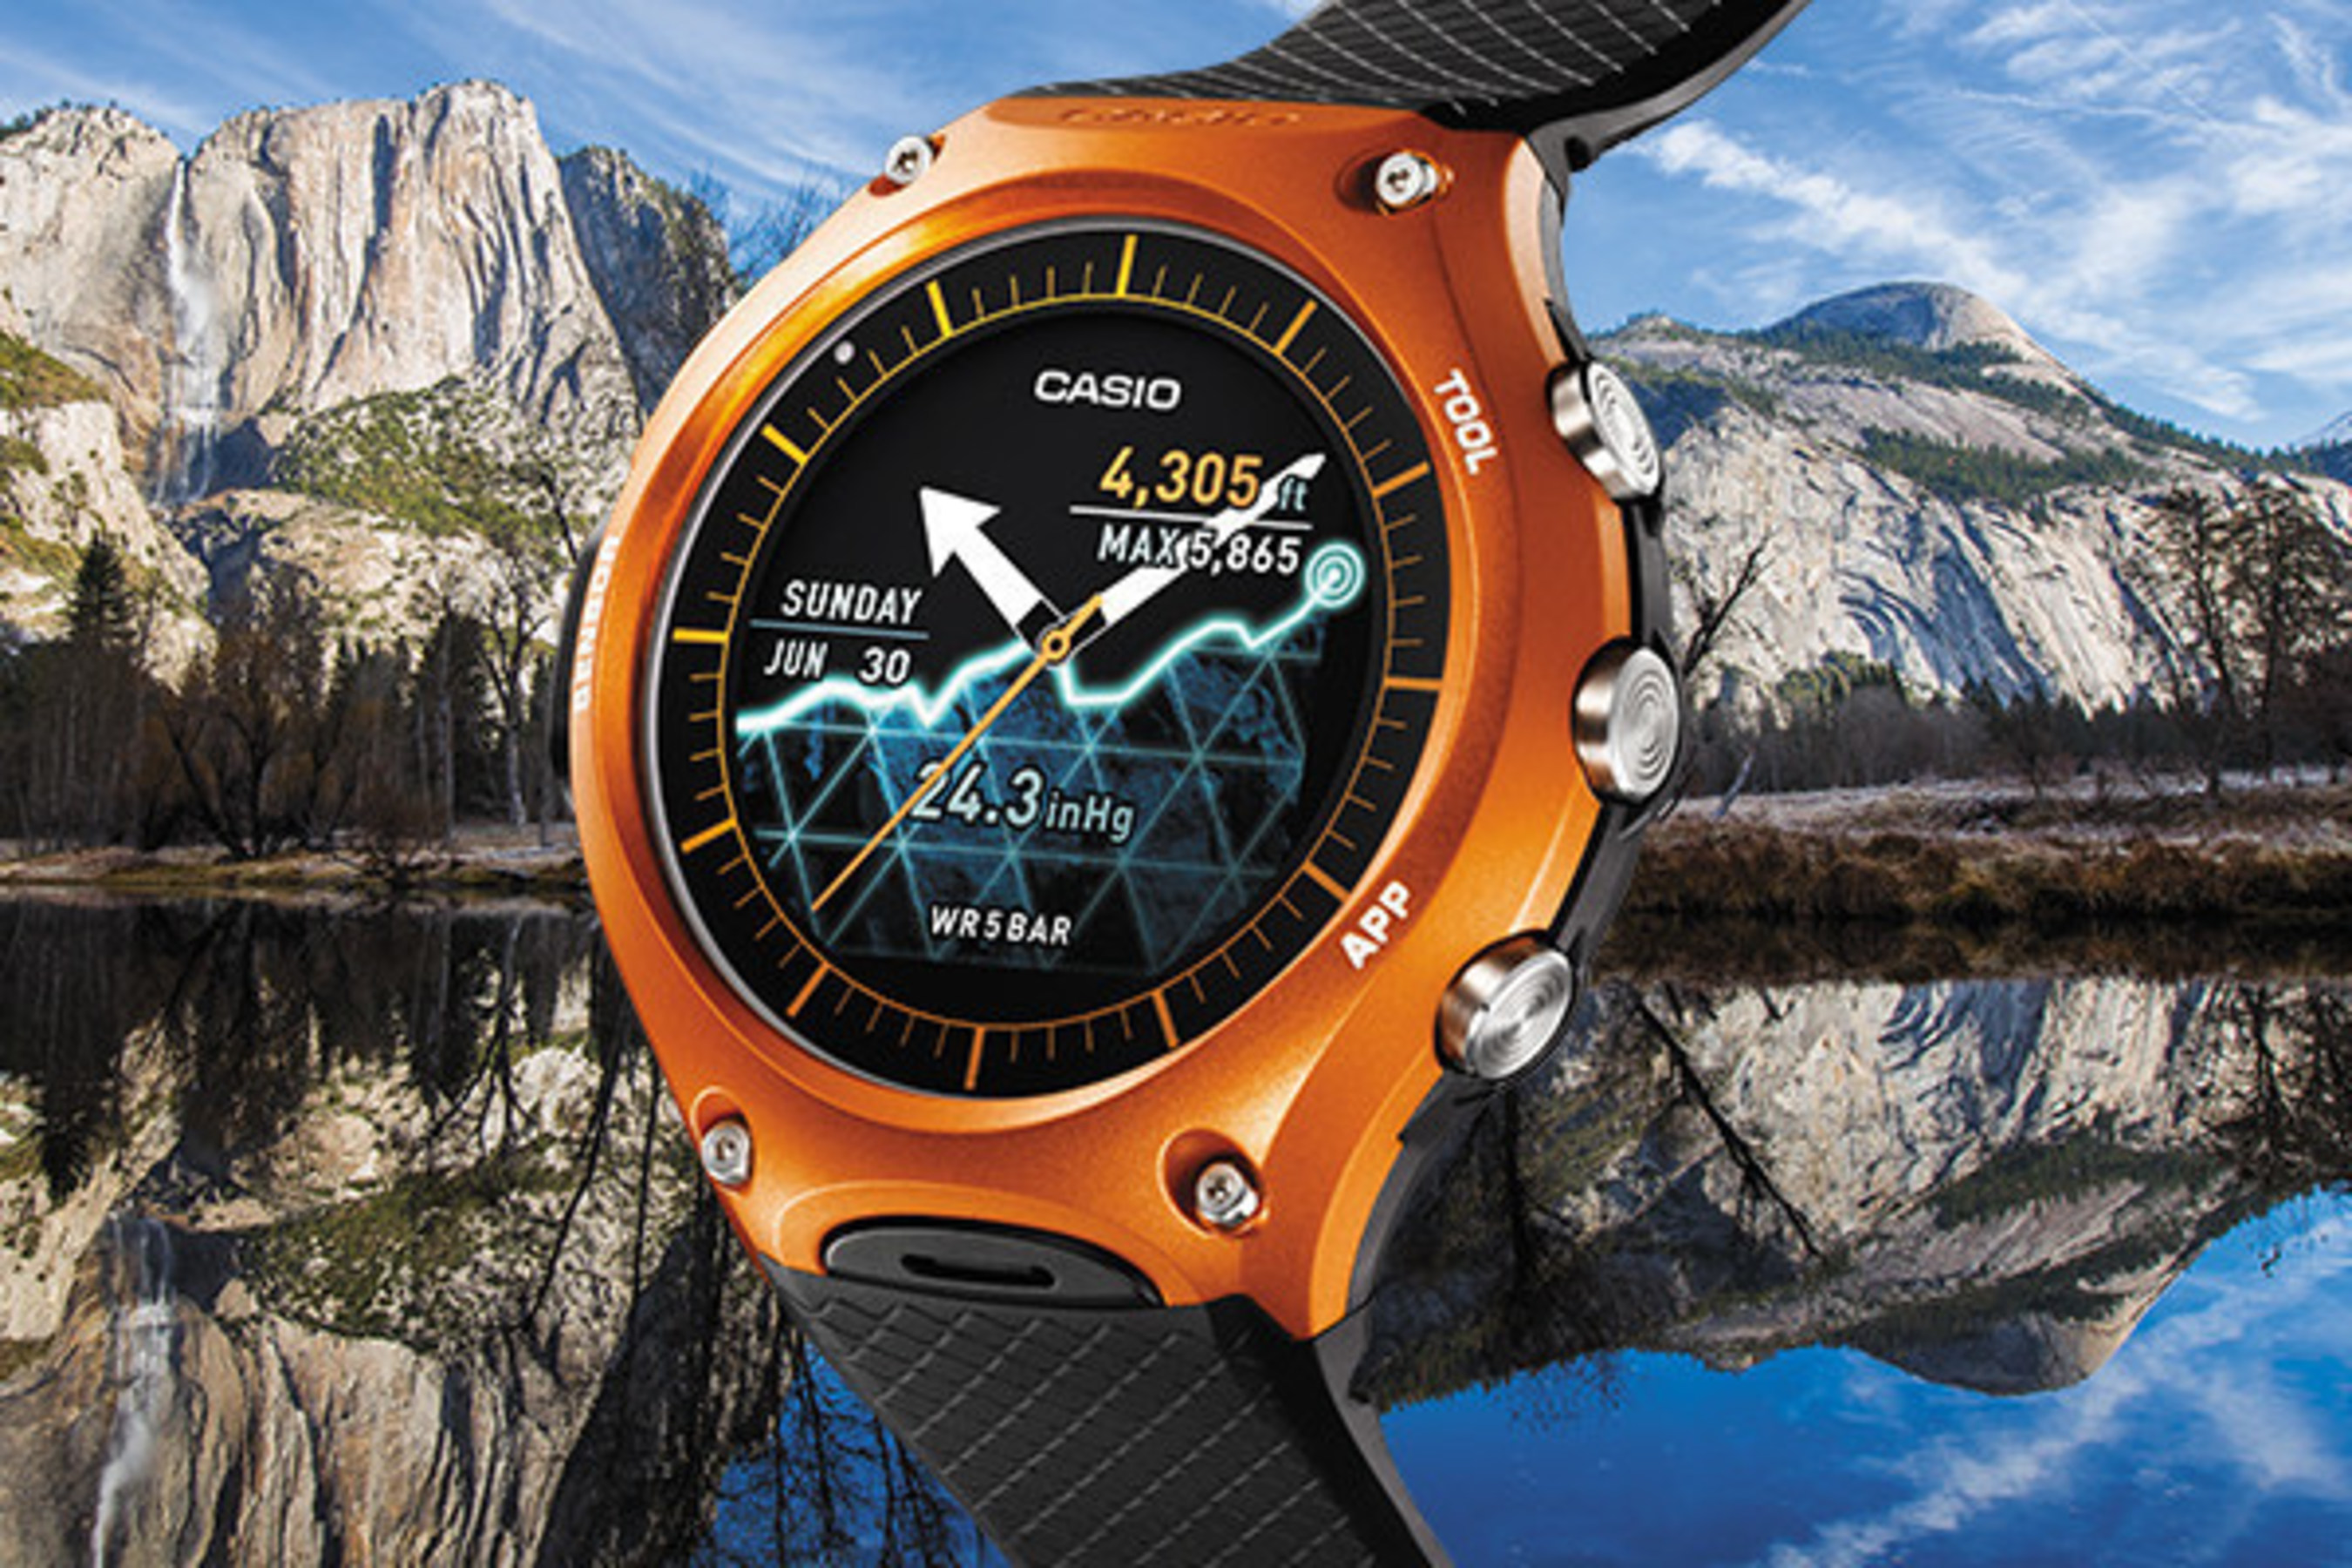 CASIO'S GROUNDBREAKING SMART OUTDOOR WATCH NOW AVAILABLE NATIONWIDE